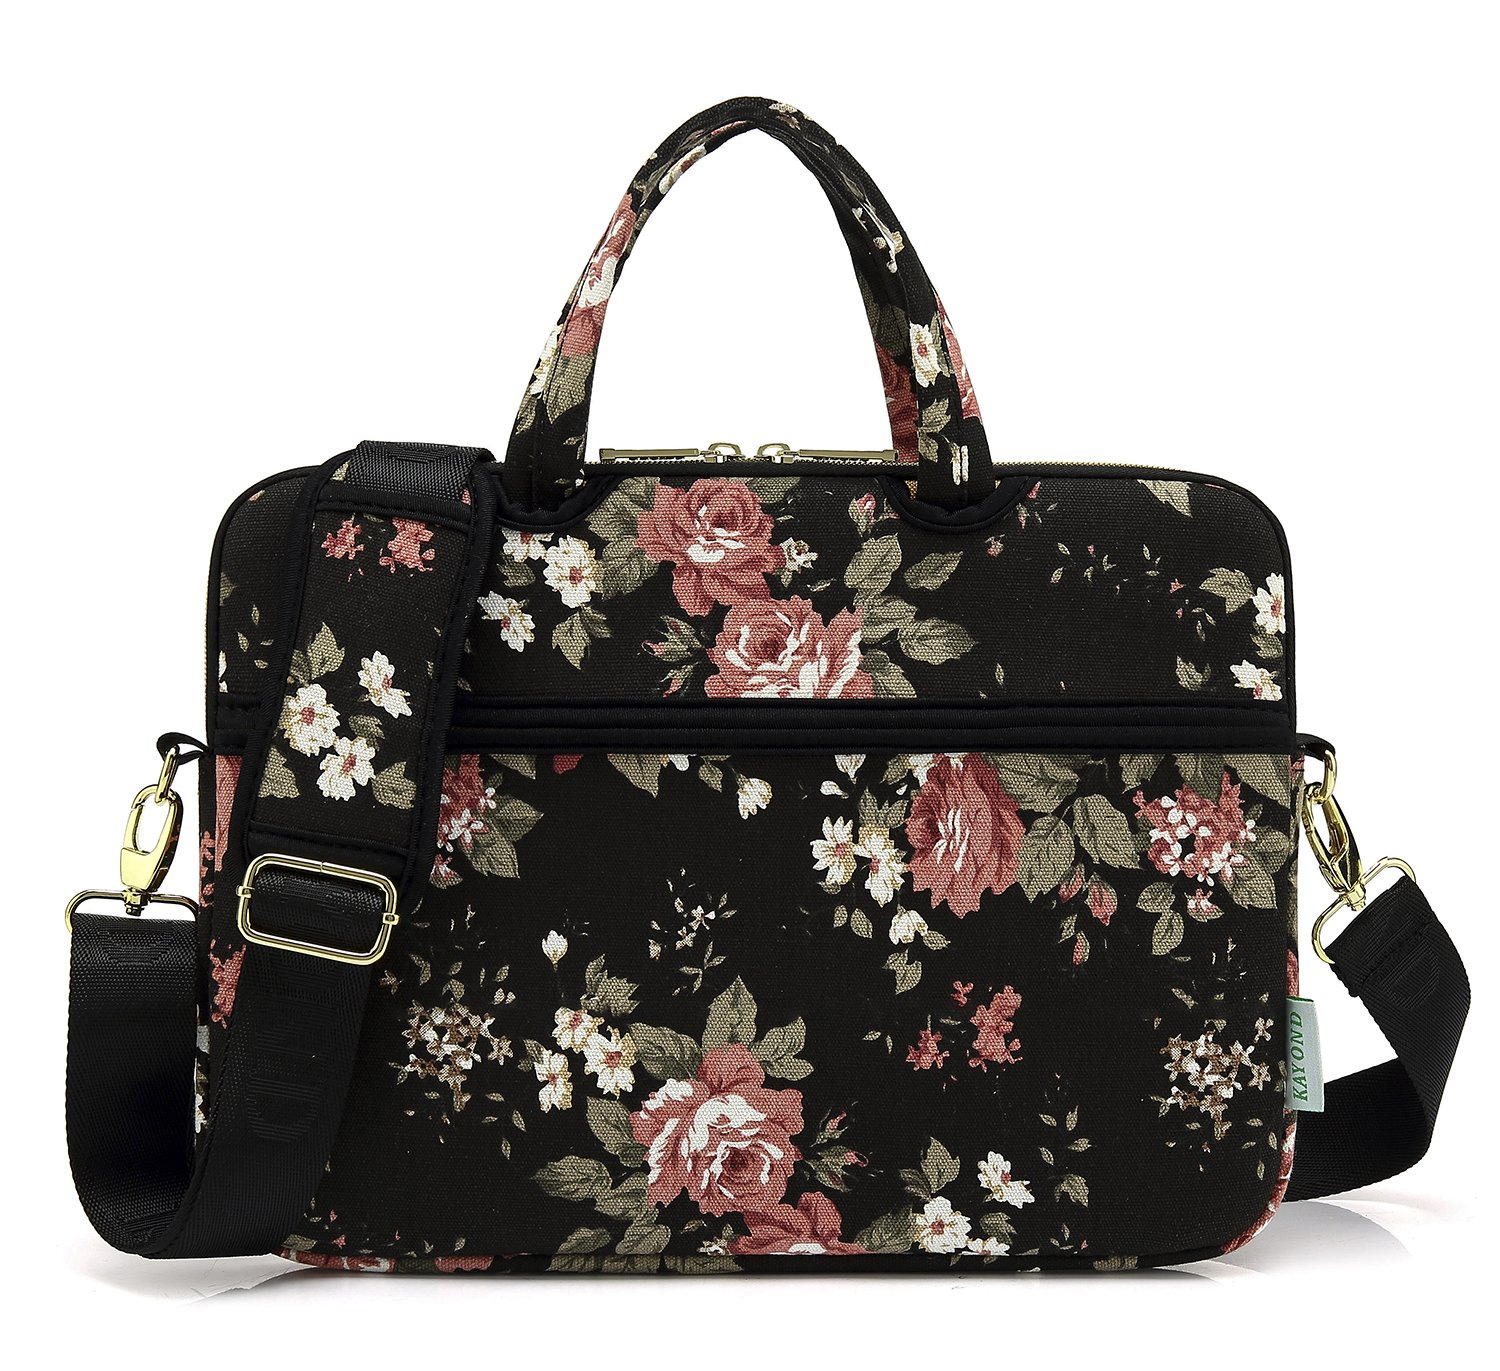 kayond Black Chinese Rose Canvas Fabric 15.6 inch Shoulder Bags